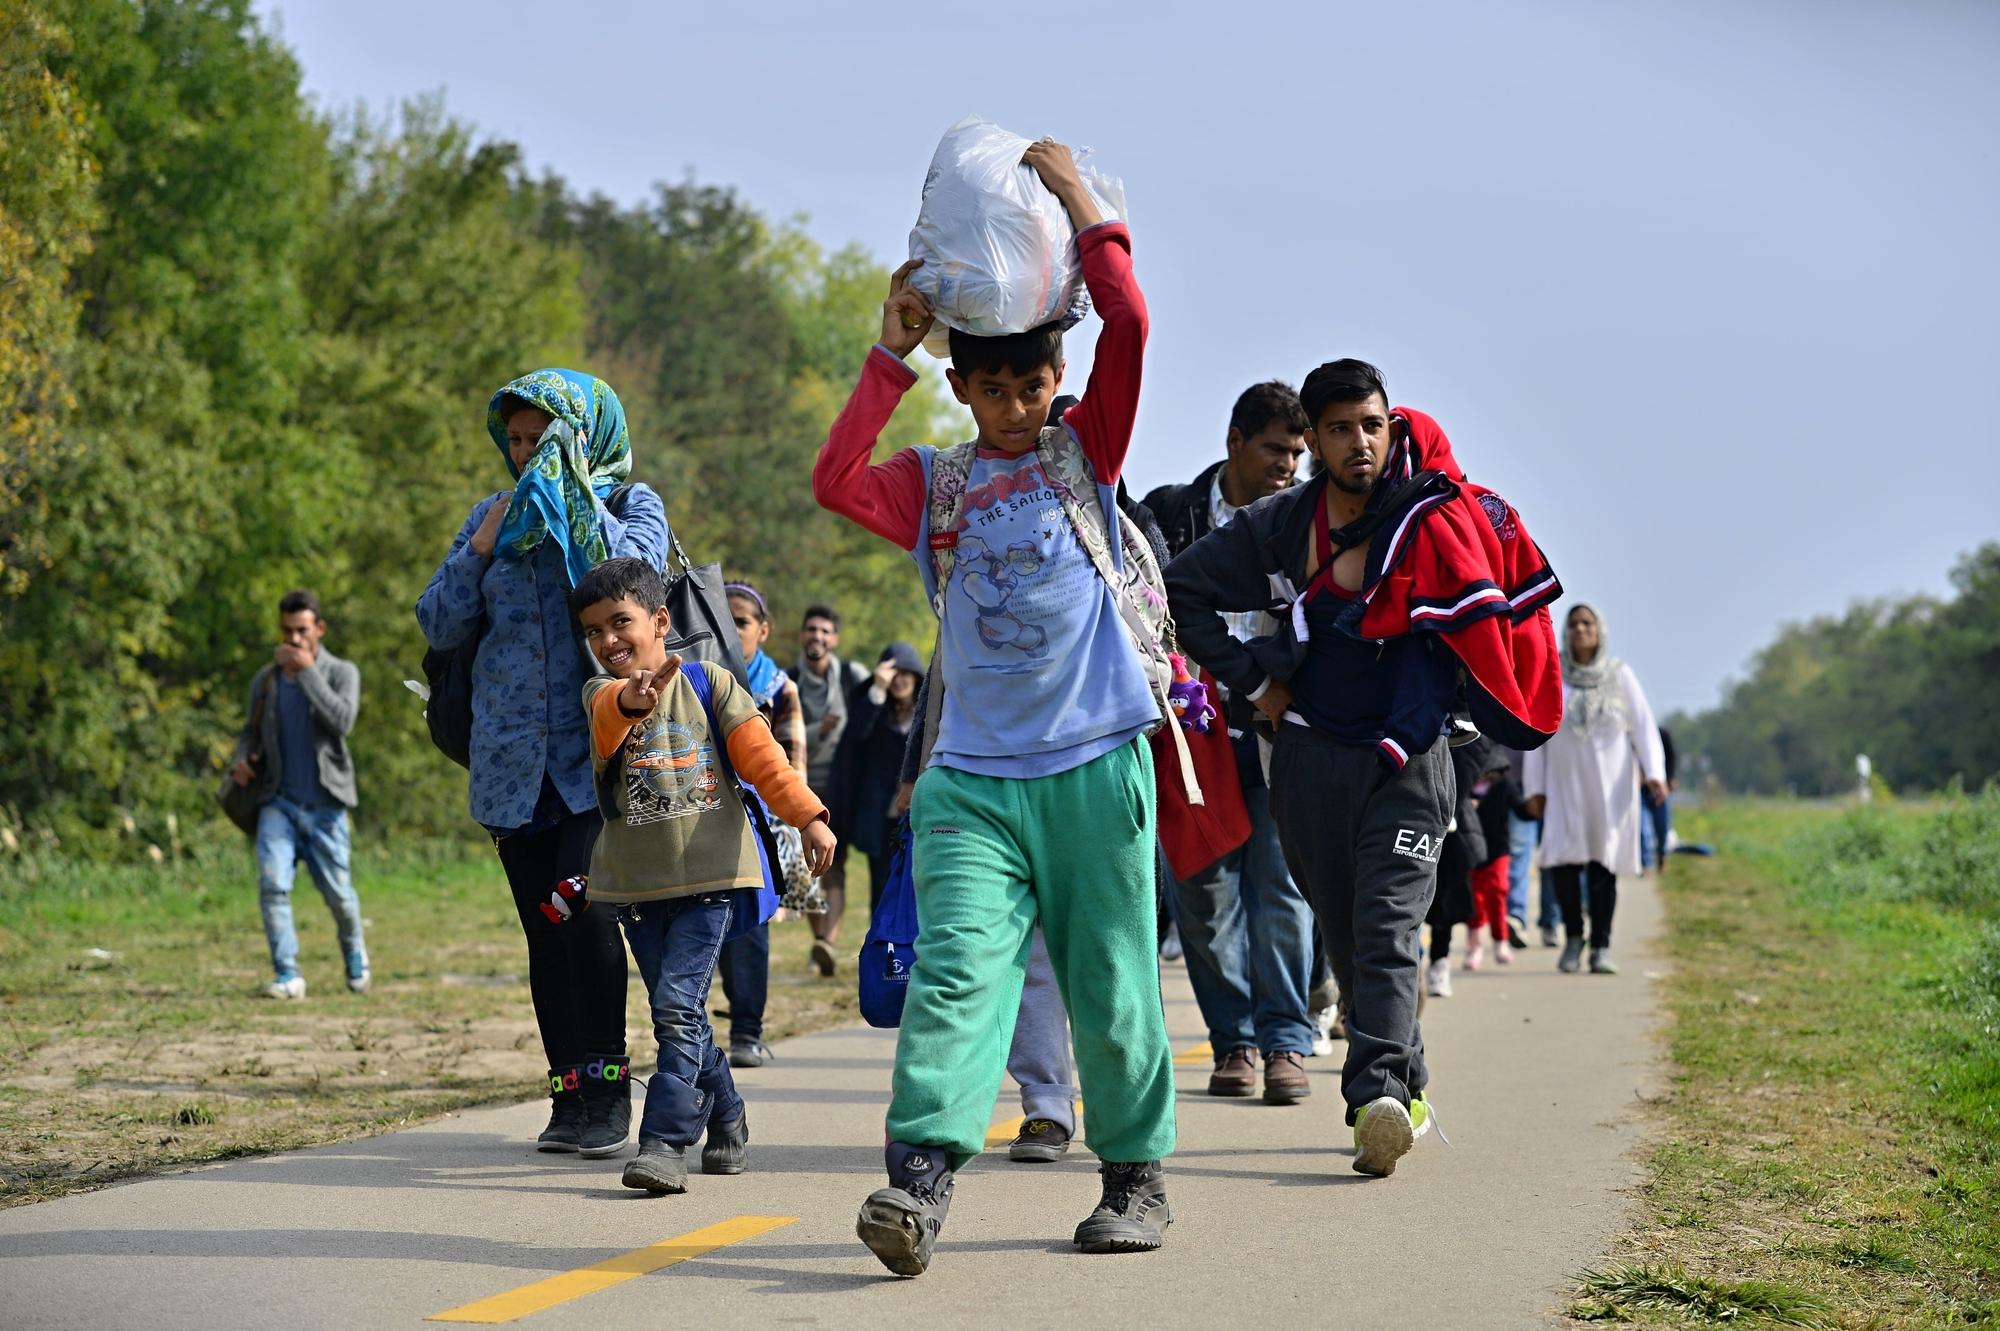 Refugees on road